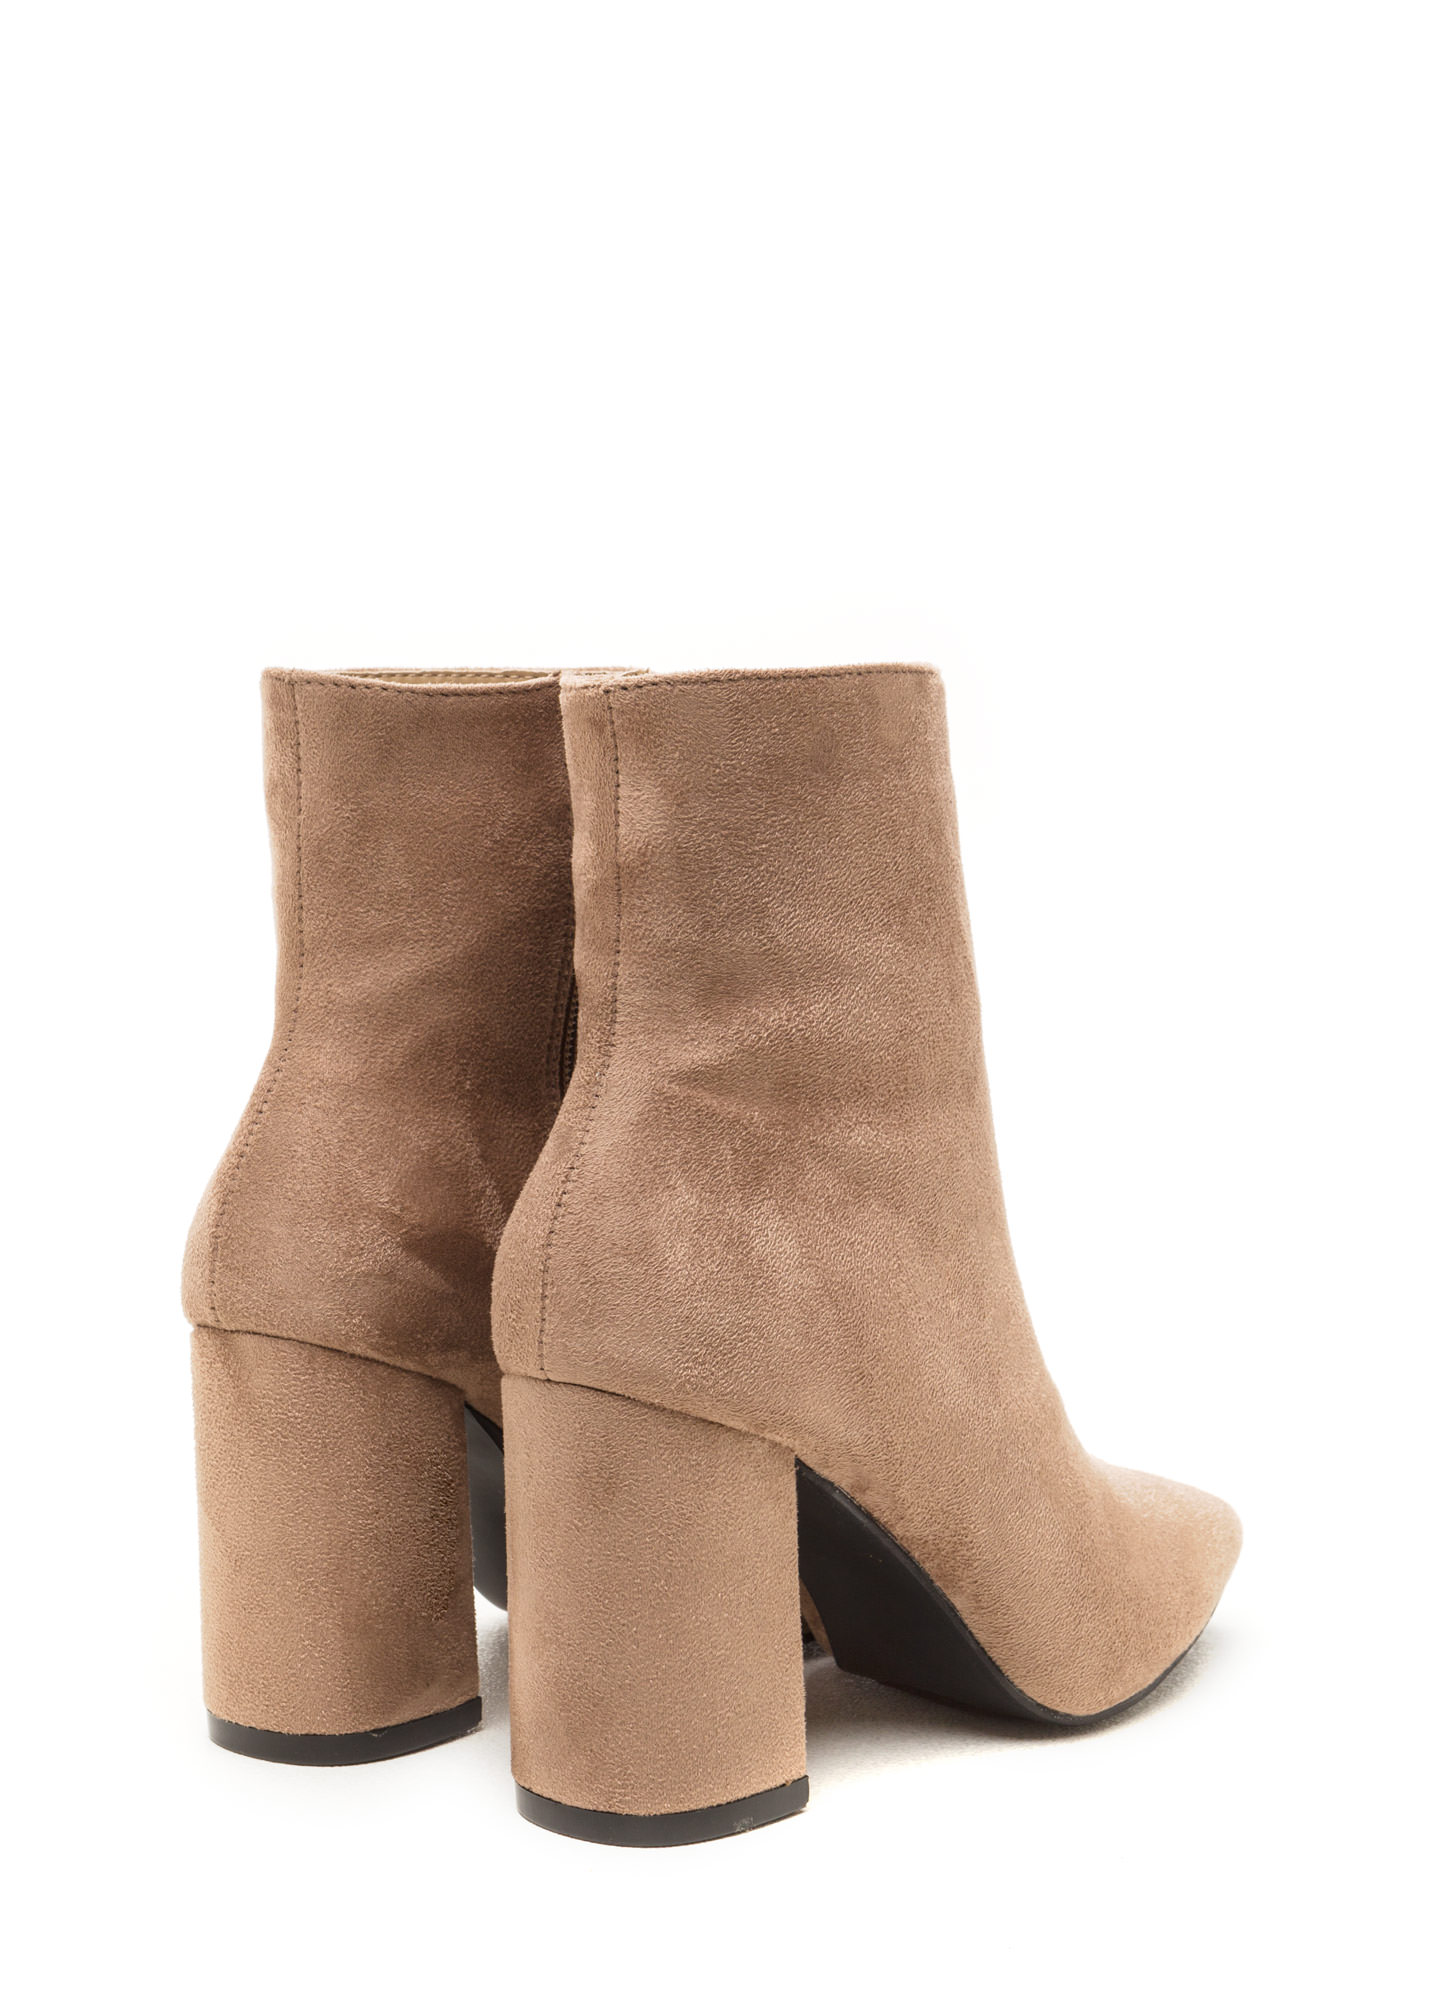 All Squared Away Faux Suede Booties TAUPE